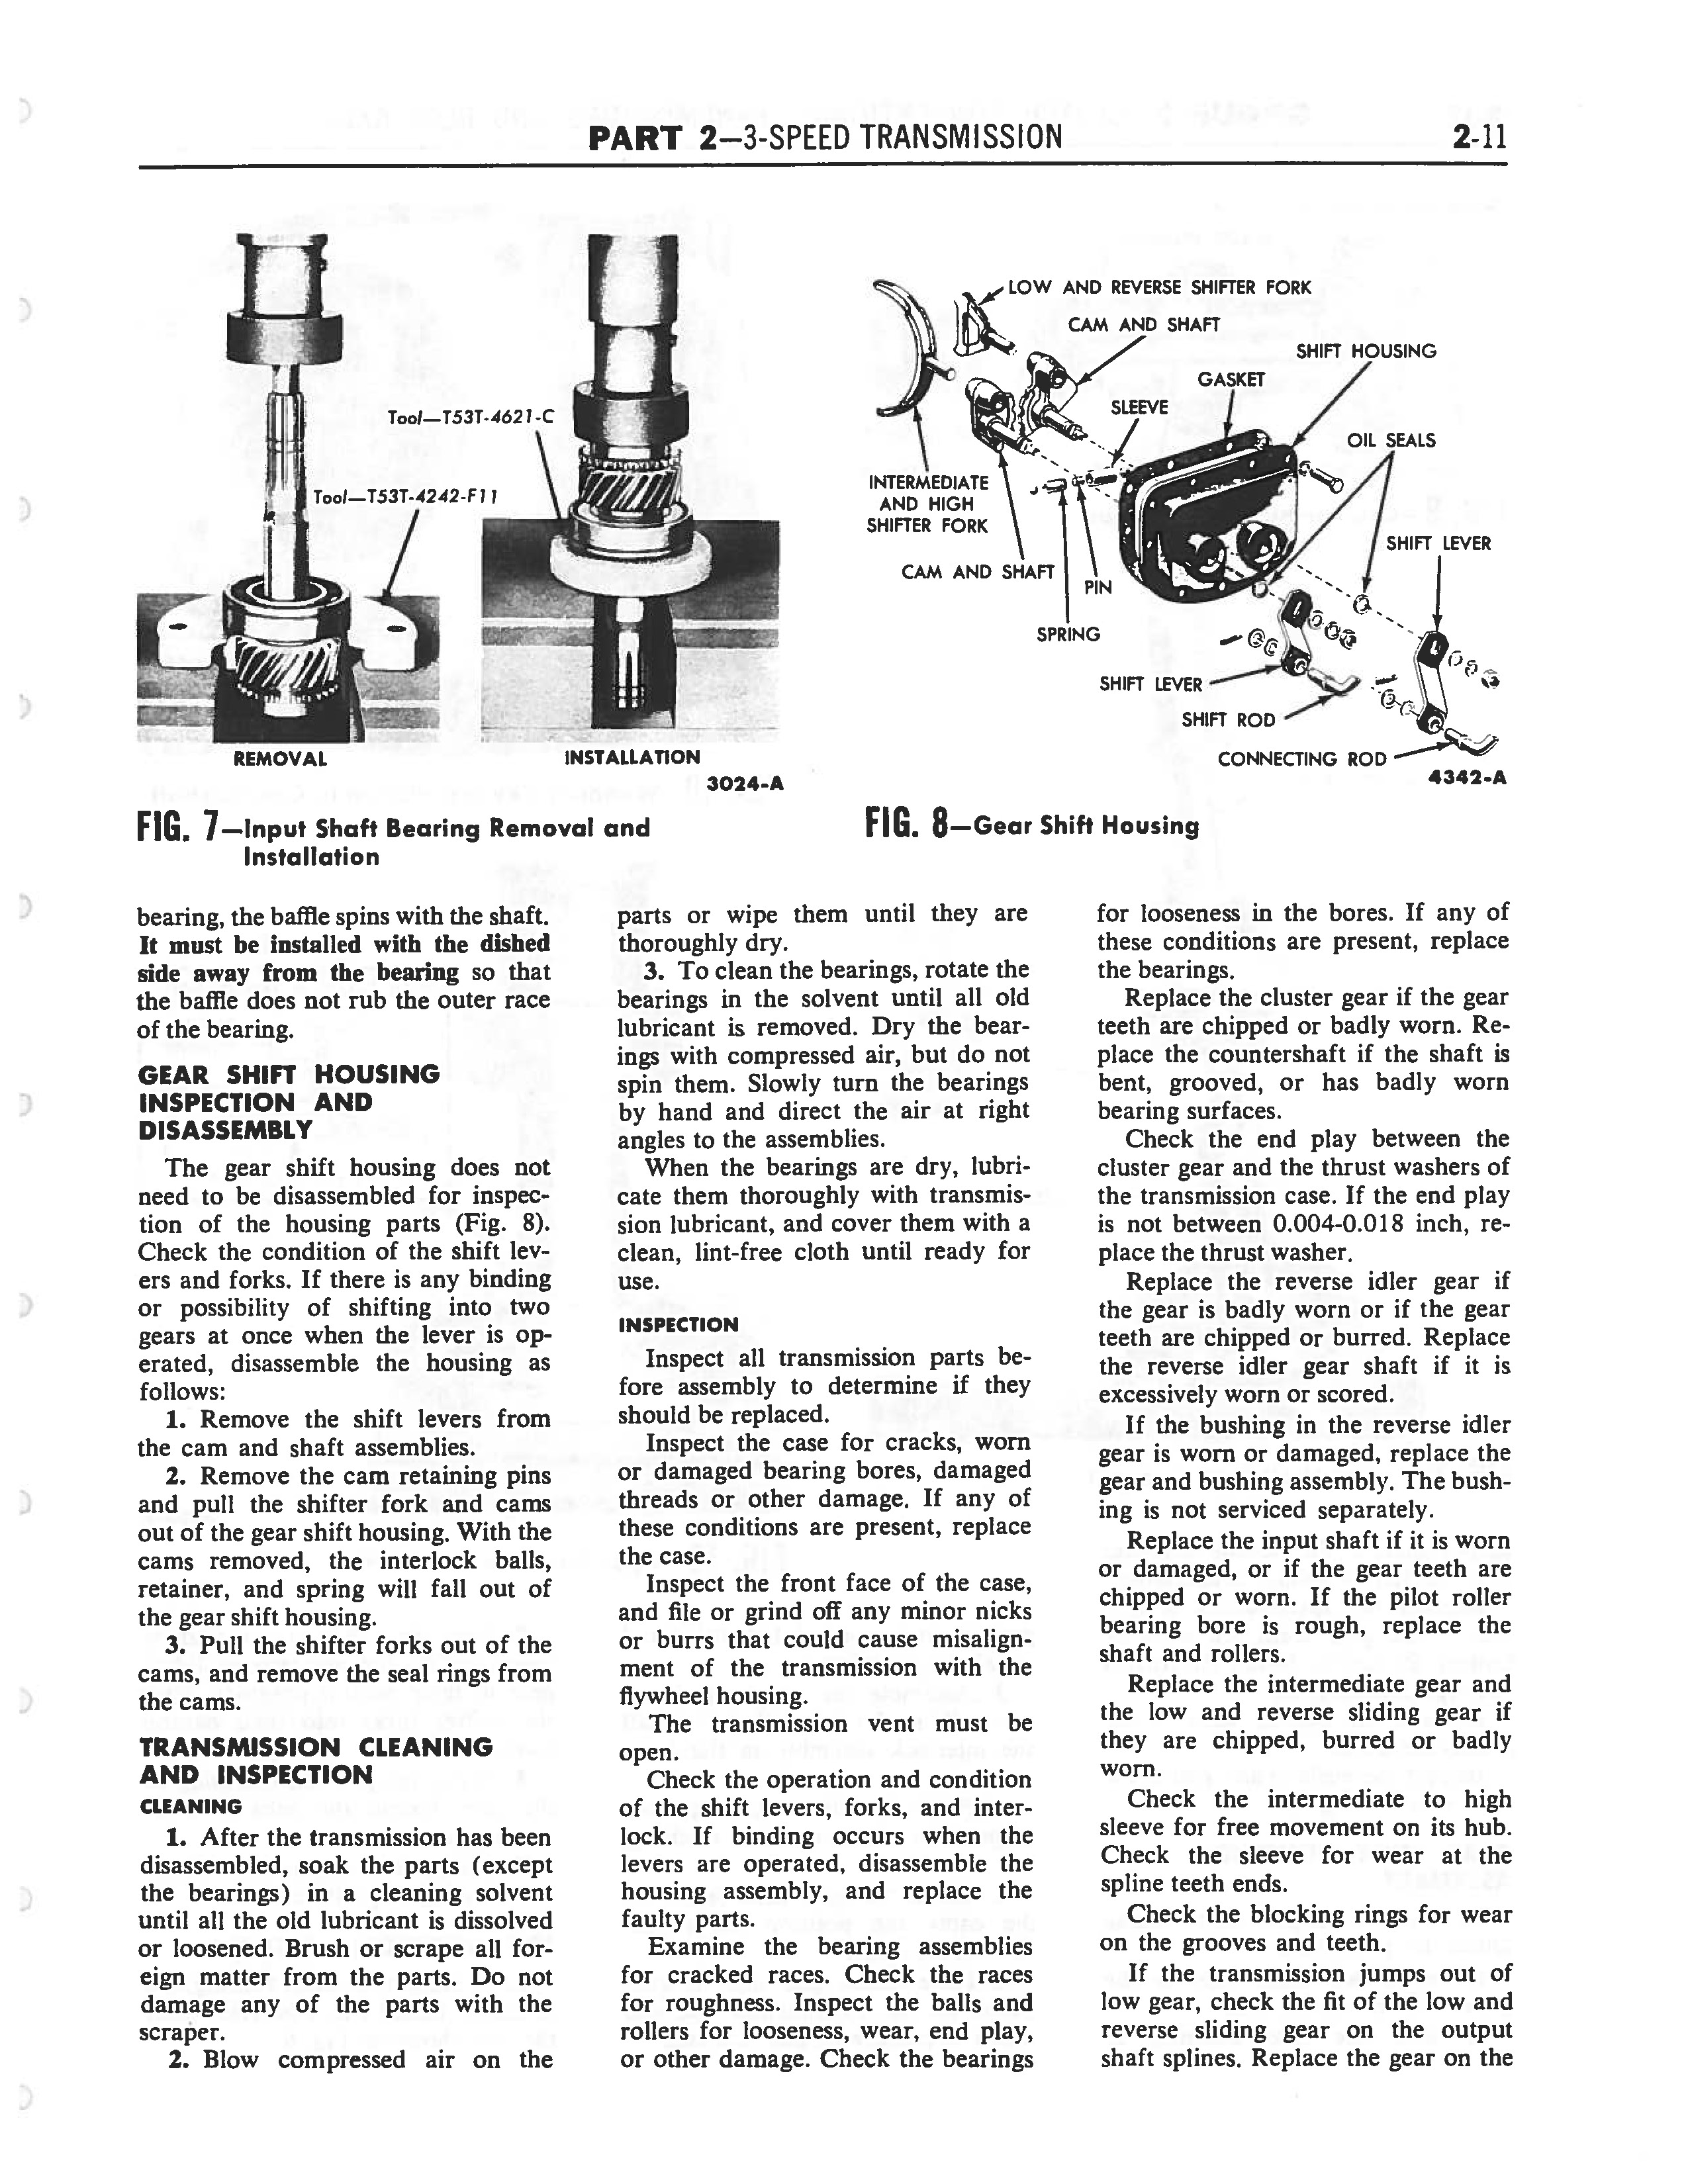 1958 Ford Thunderbird Shop Manual page 97 of 360